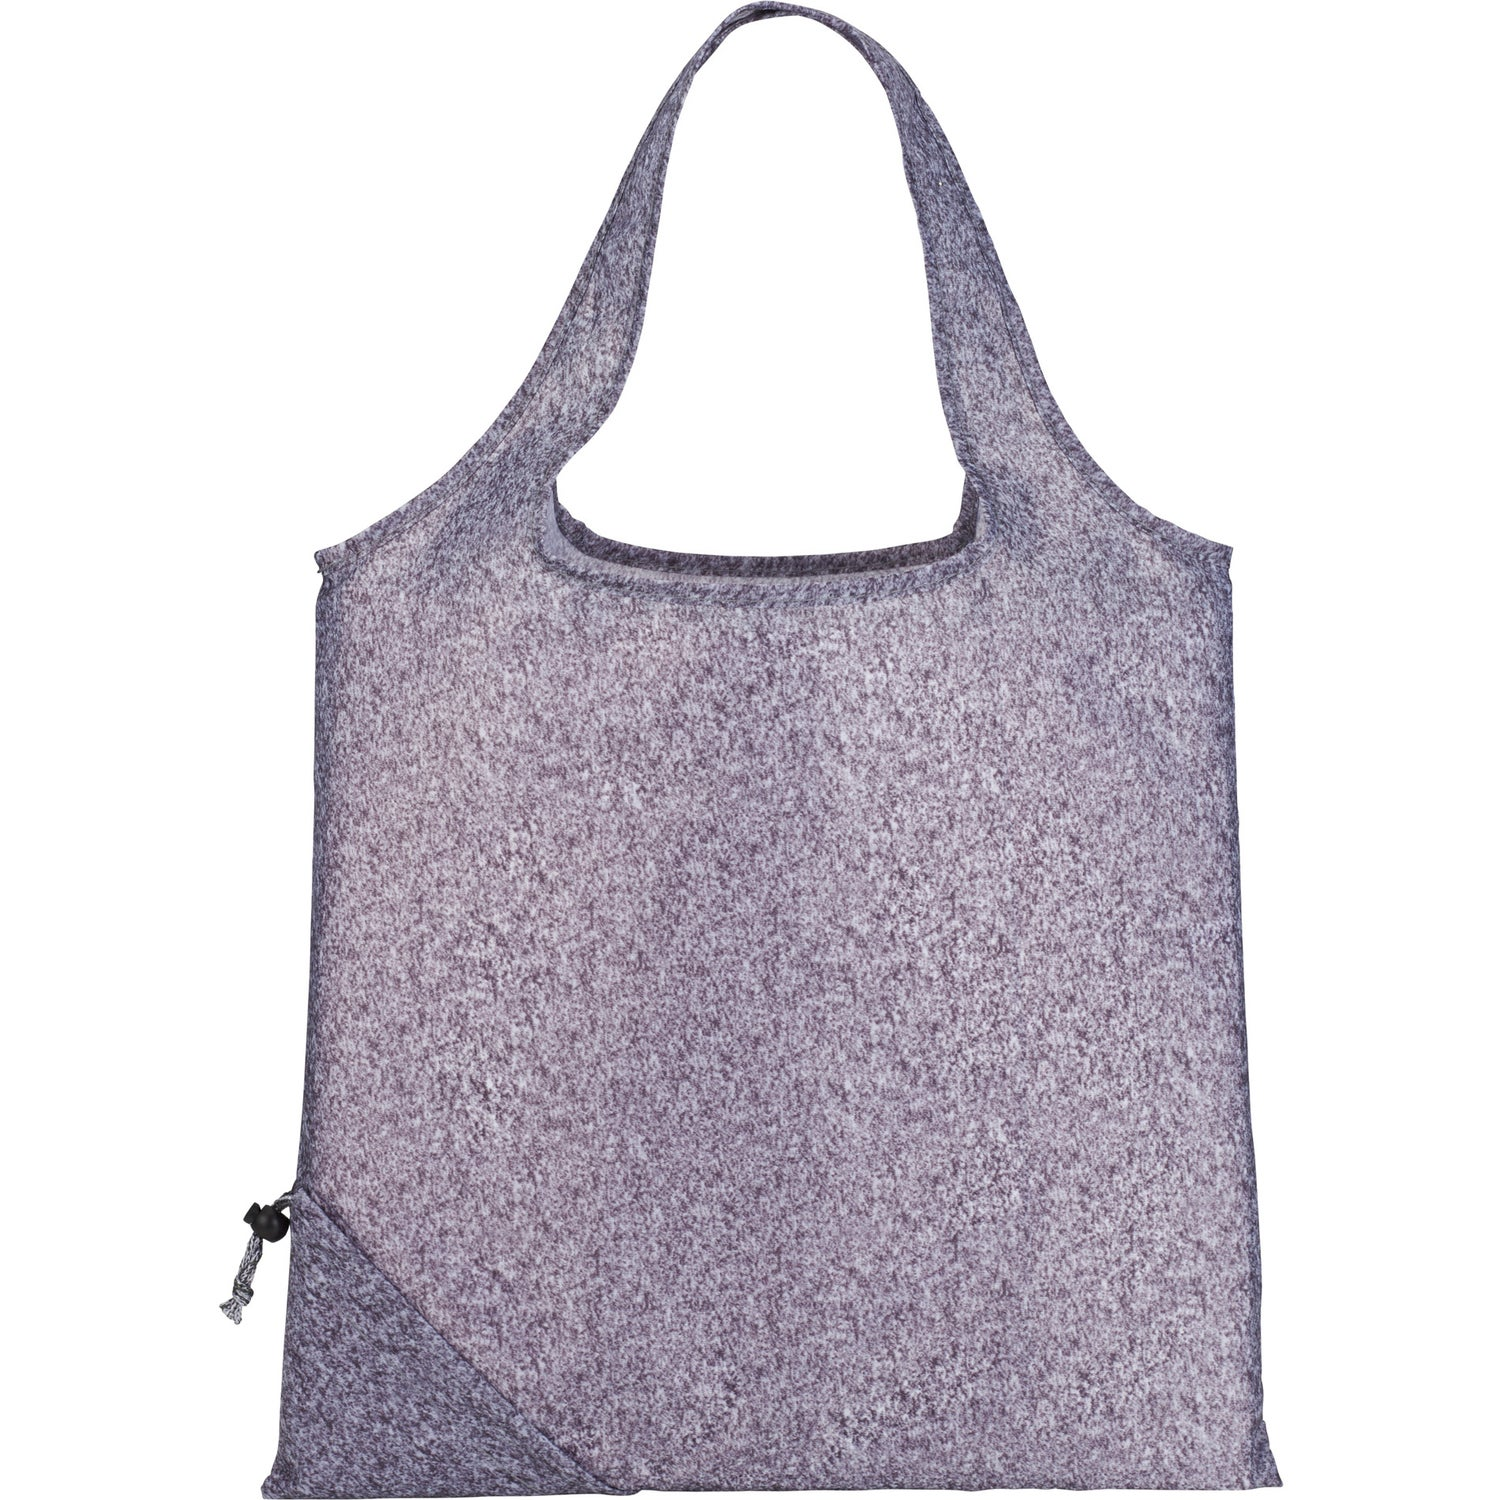 Graphite Bungalow Foldaway Tote Bag